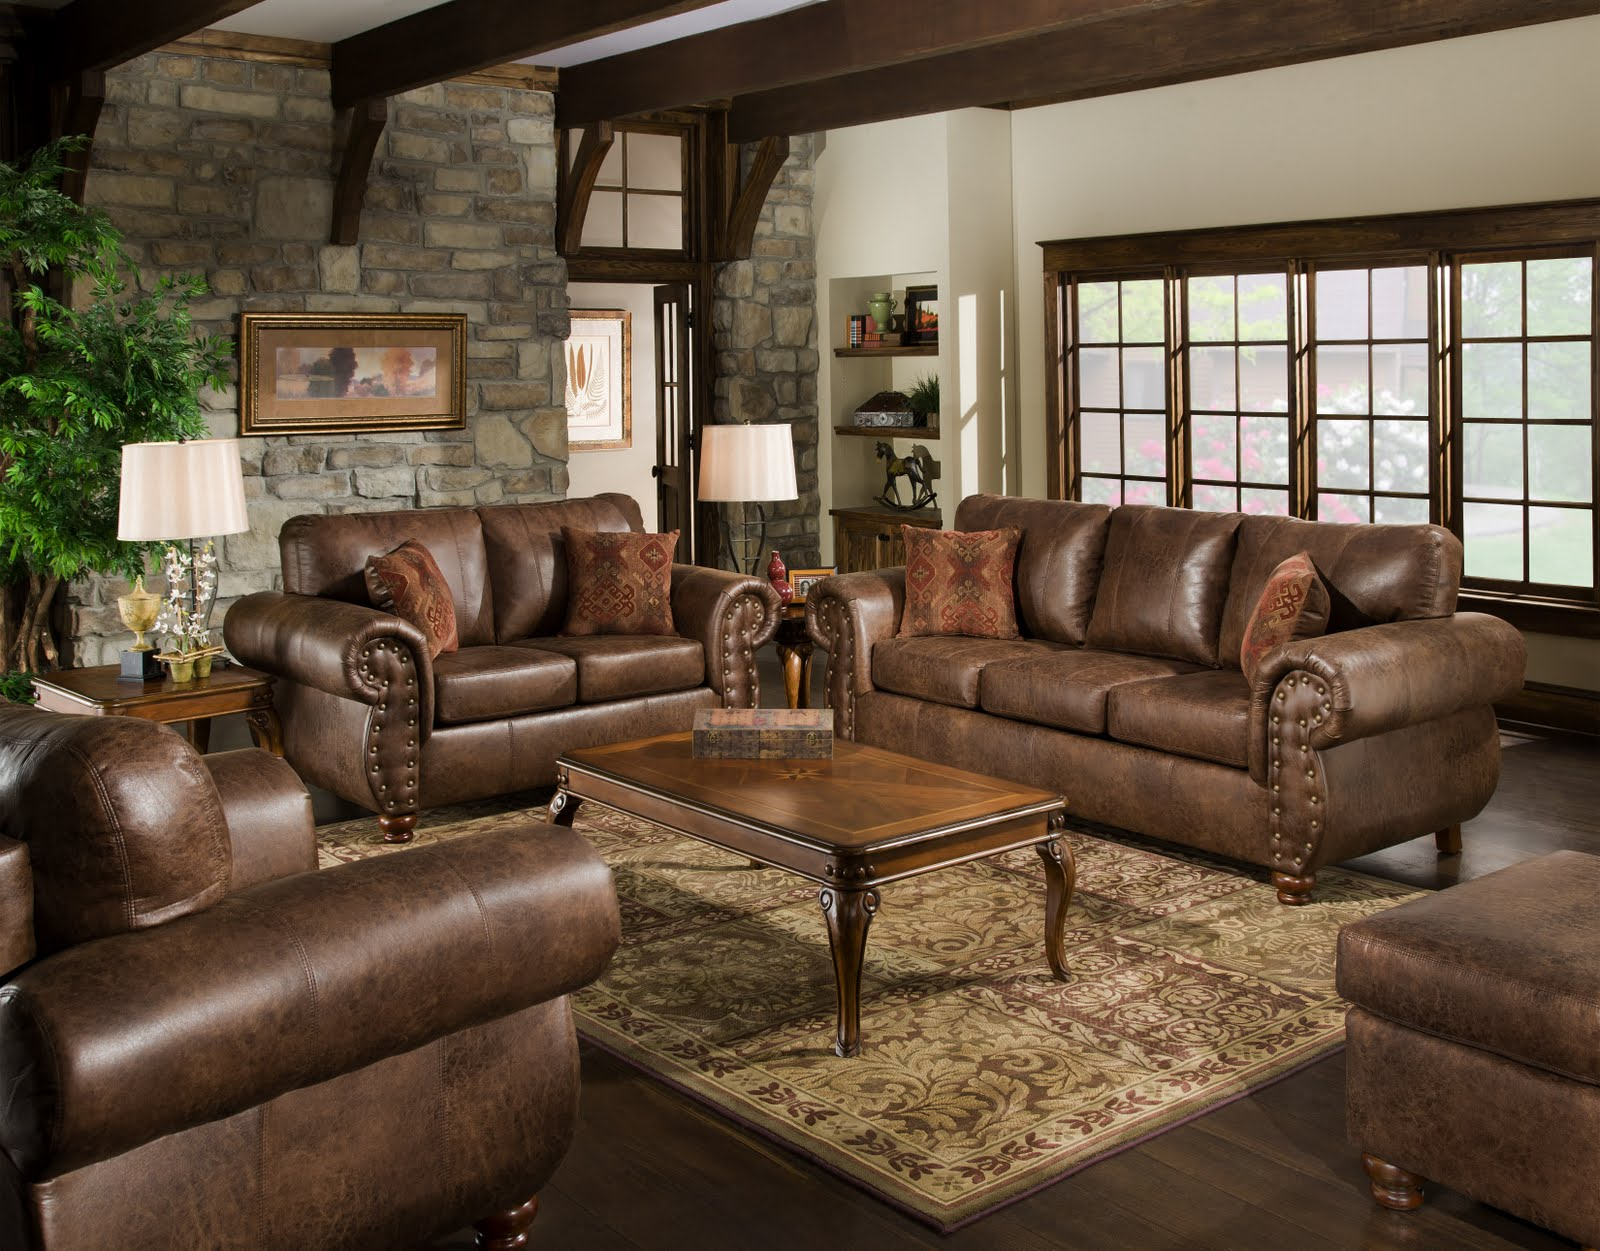 living room amazing decorating chocolate brown wonderful furniture leather arms sofa sets beige floral wool rug wooden laminate flooring what color end tables with dark dog kennel